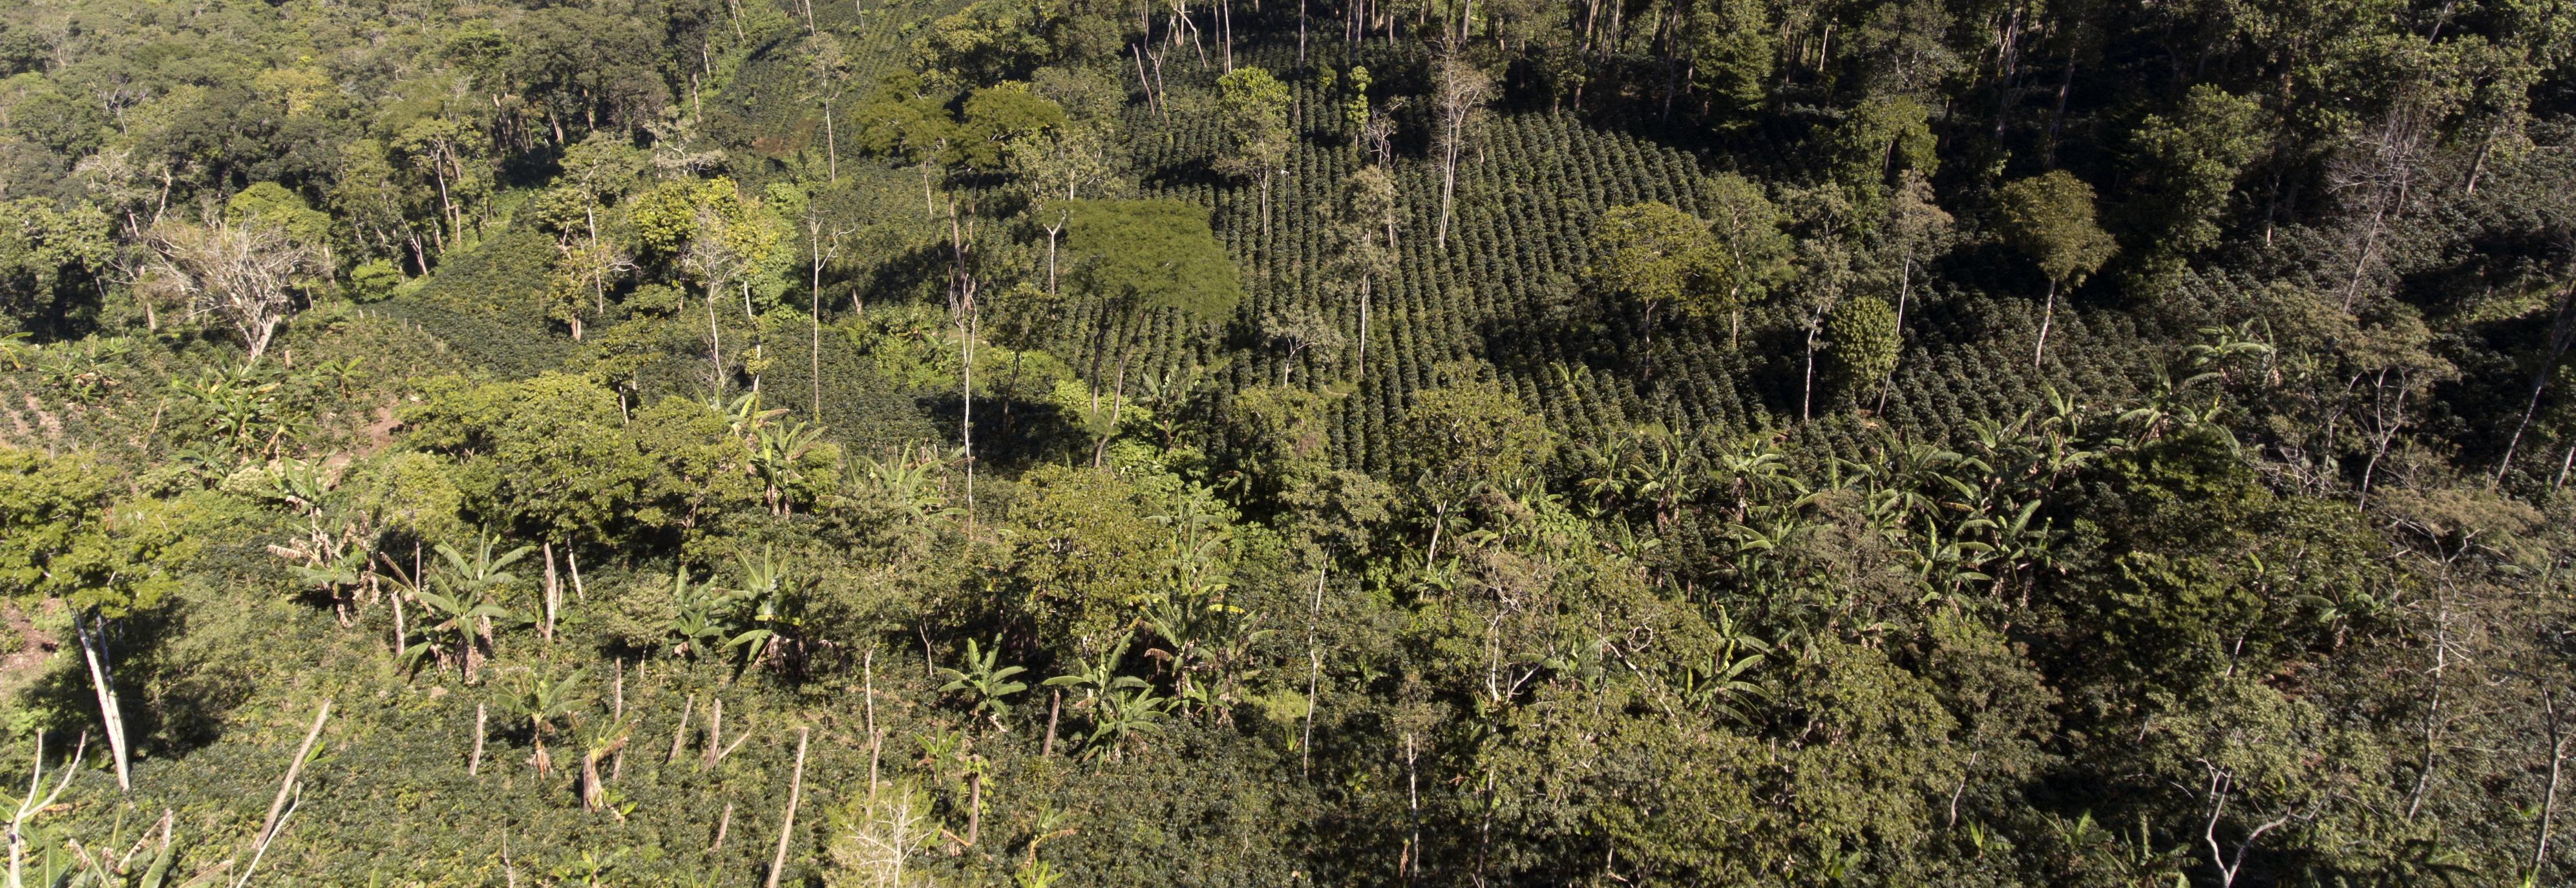 Coffee plantation seen from a drone in Nicaracgua © Giuseppe Cipriani for UTZ